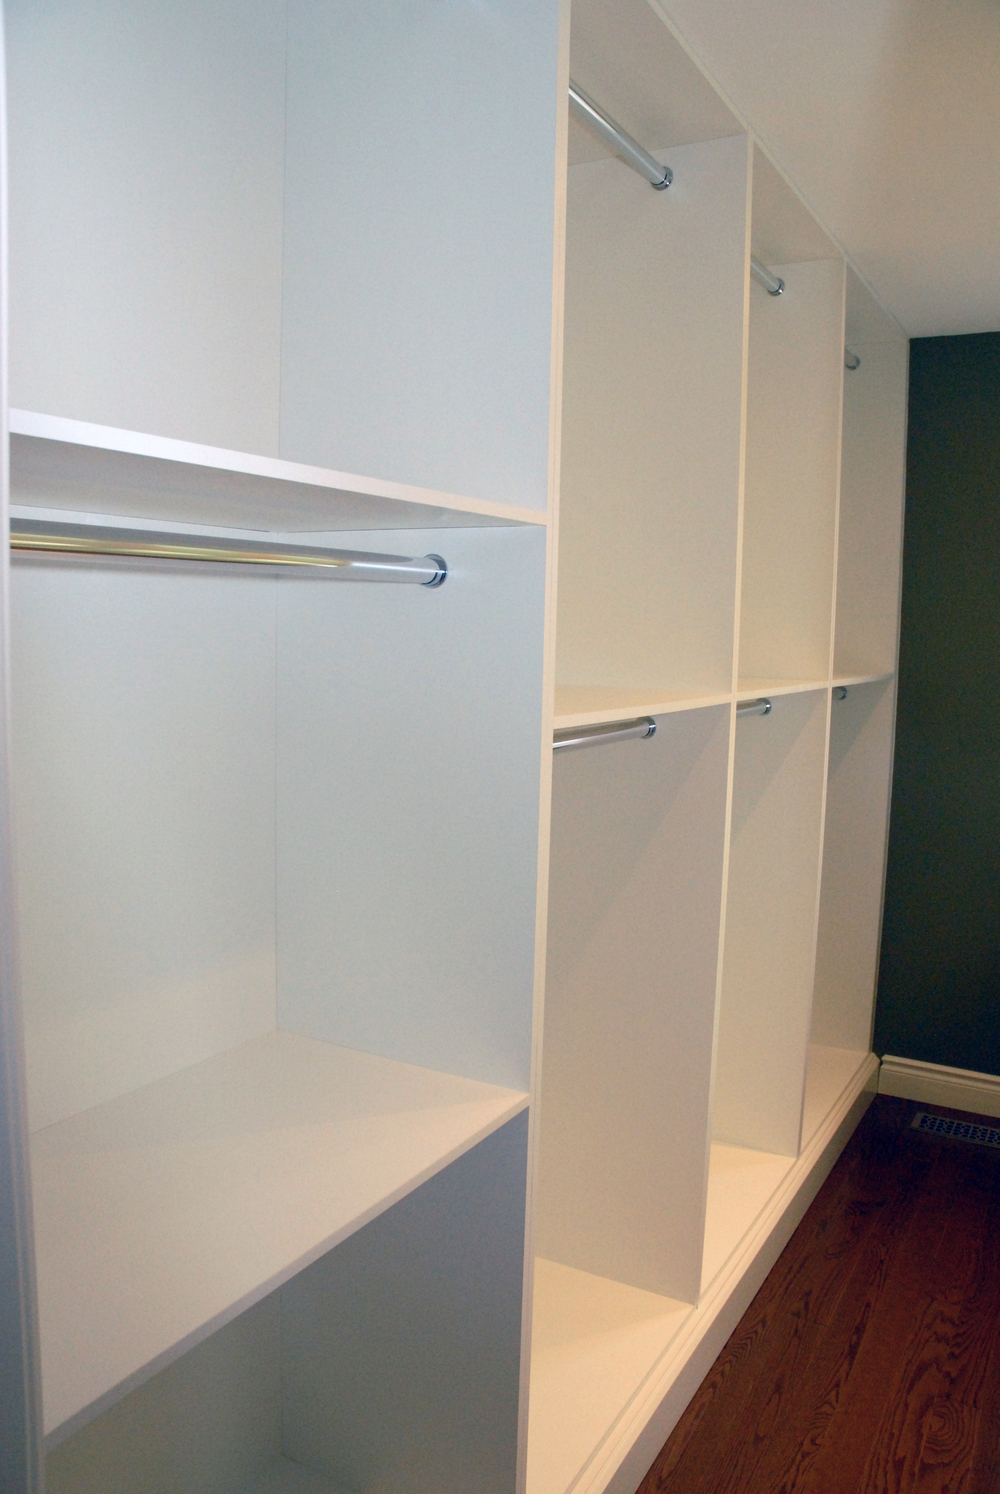 Open shelving for hanging storage of pants, shirts and full height clothing